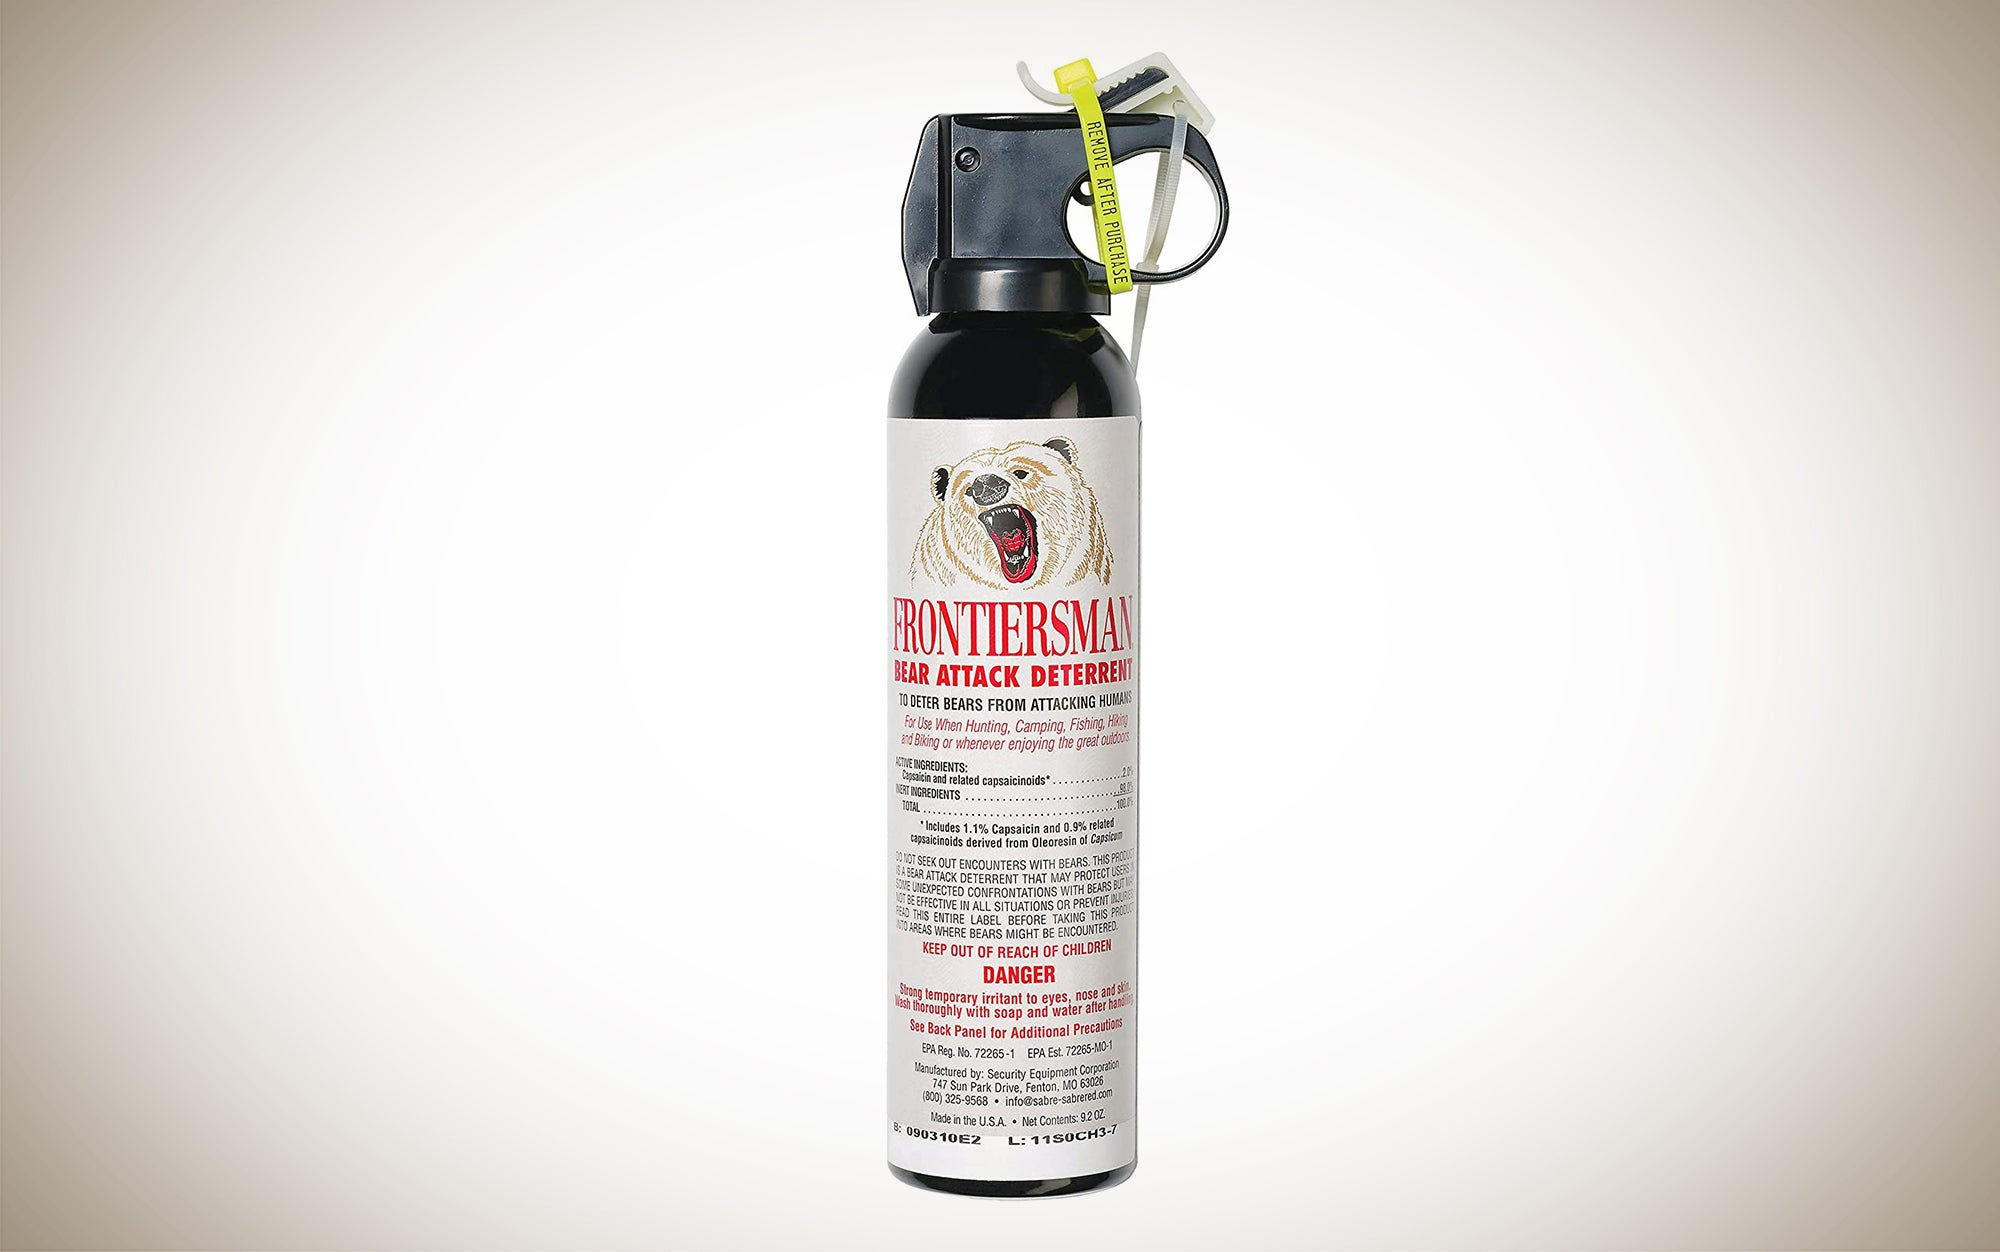 Sabre Frontiersman Bear Spray is one of the best bear deterrent options on the market.